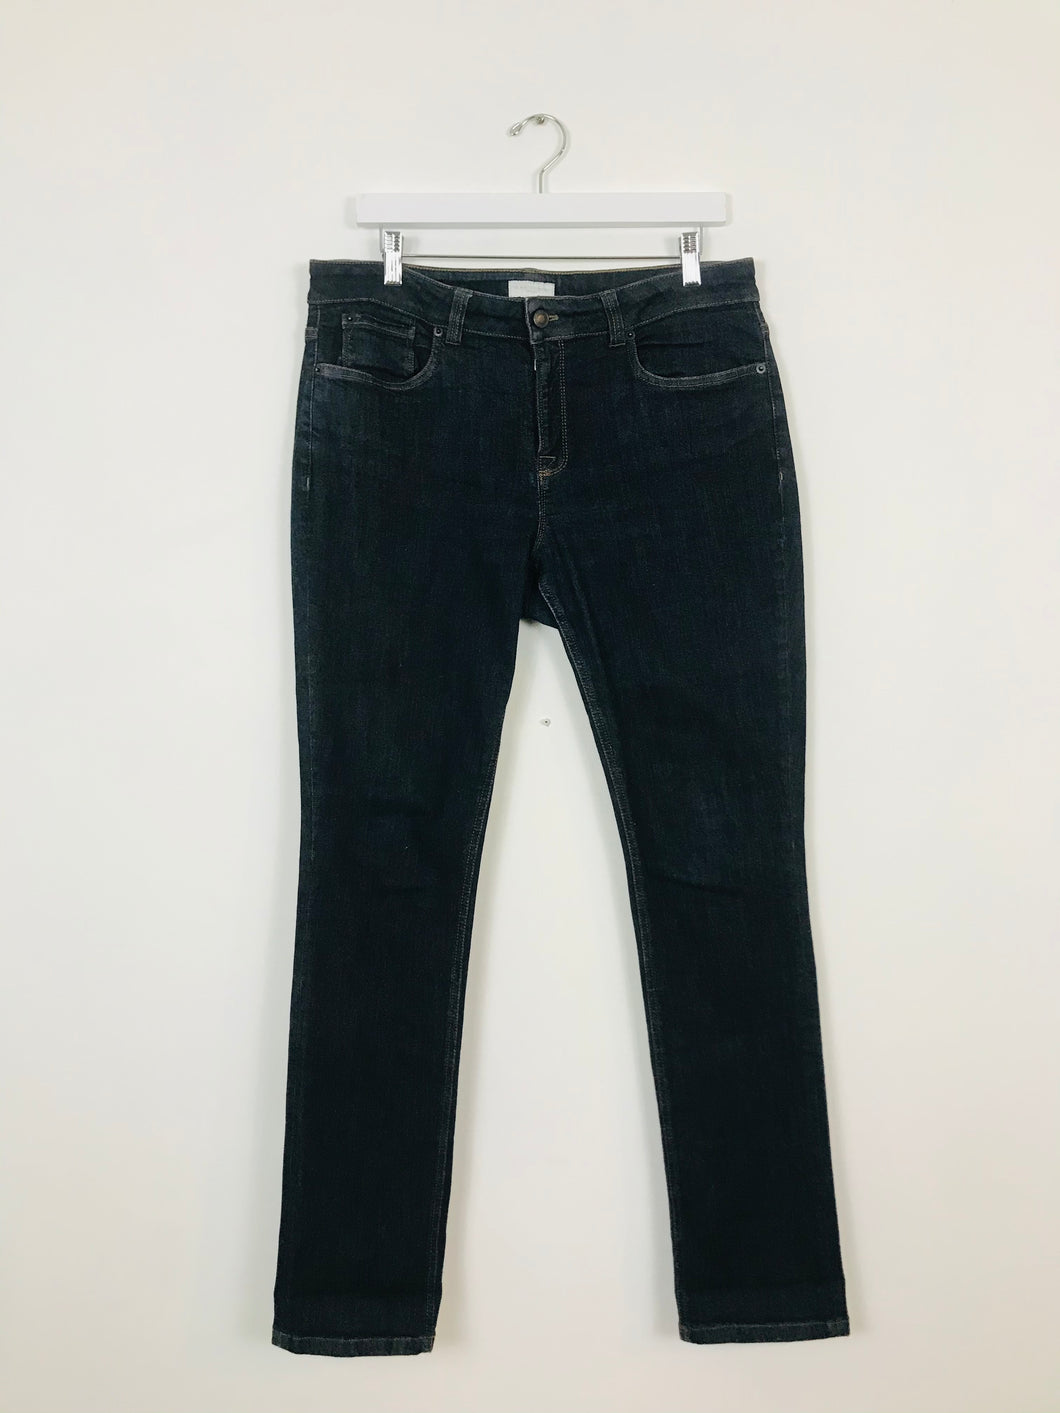 The White Company Women's Straight Jeans | UK14 | Blue